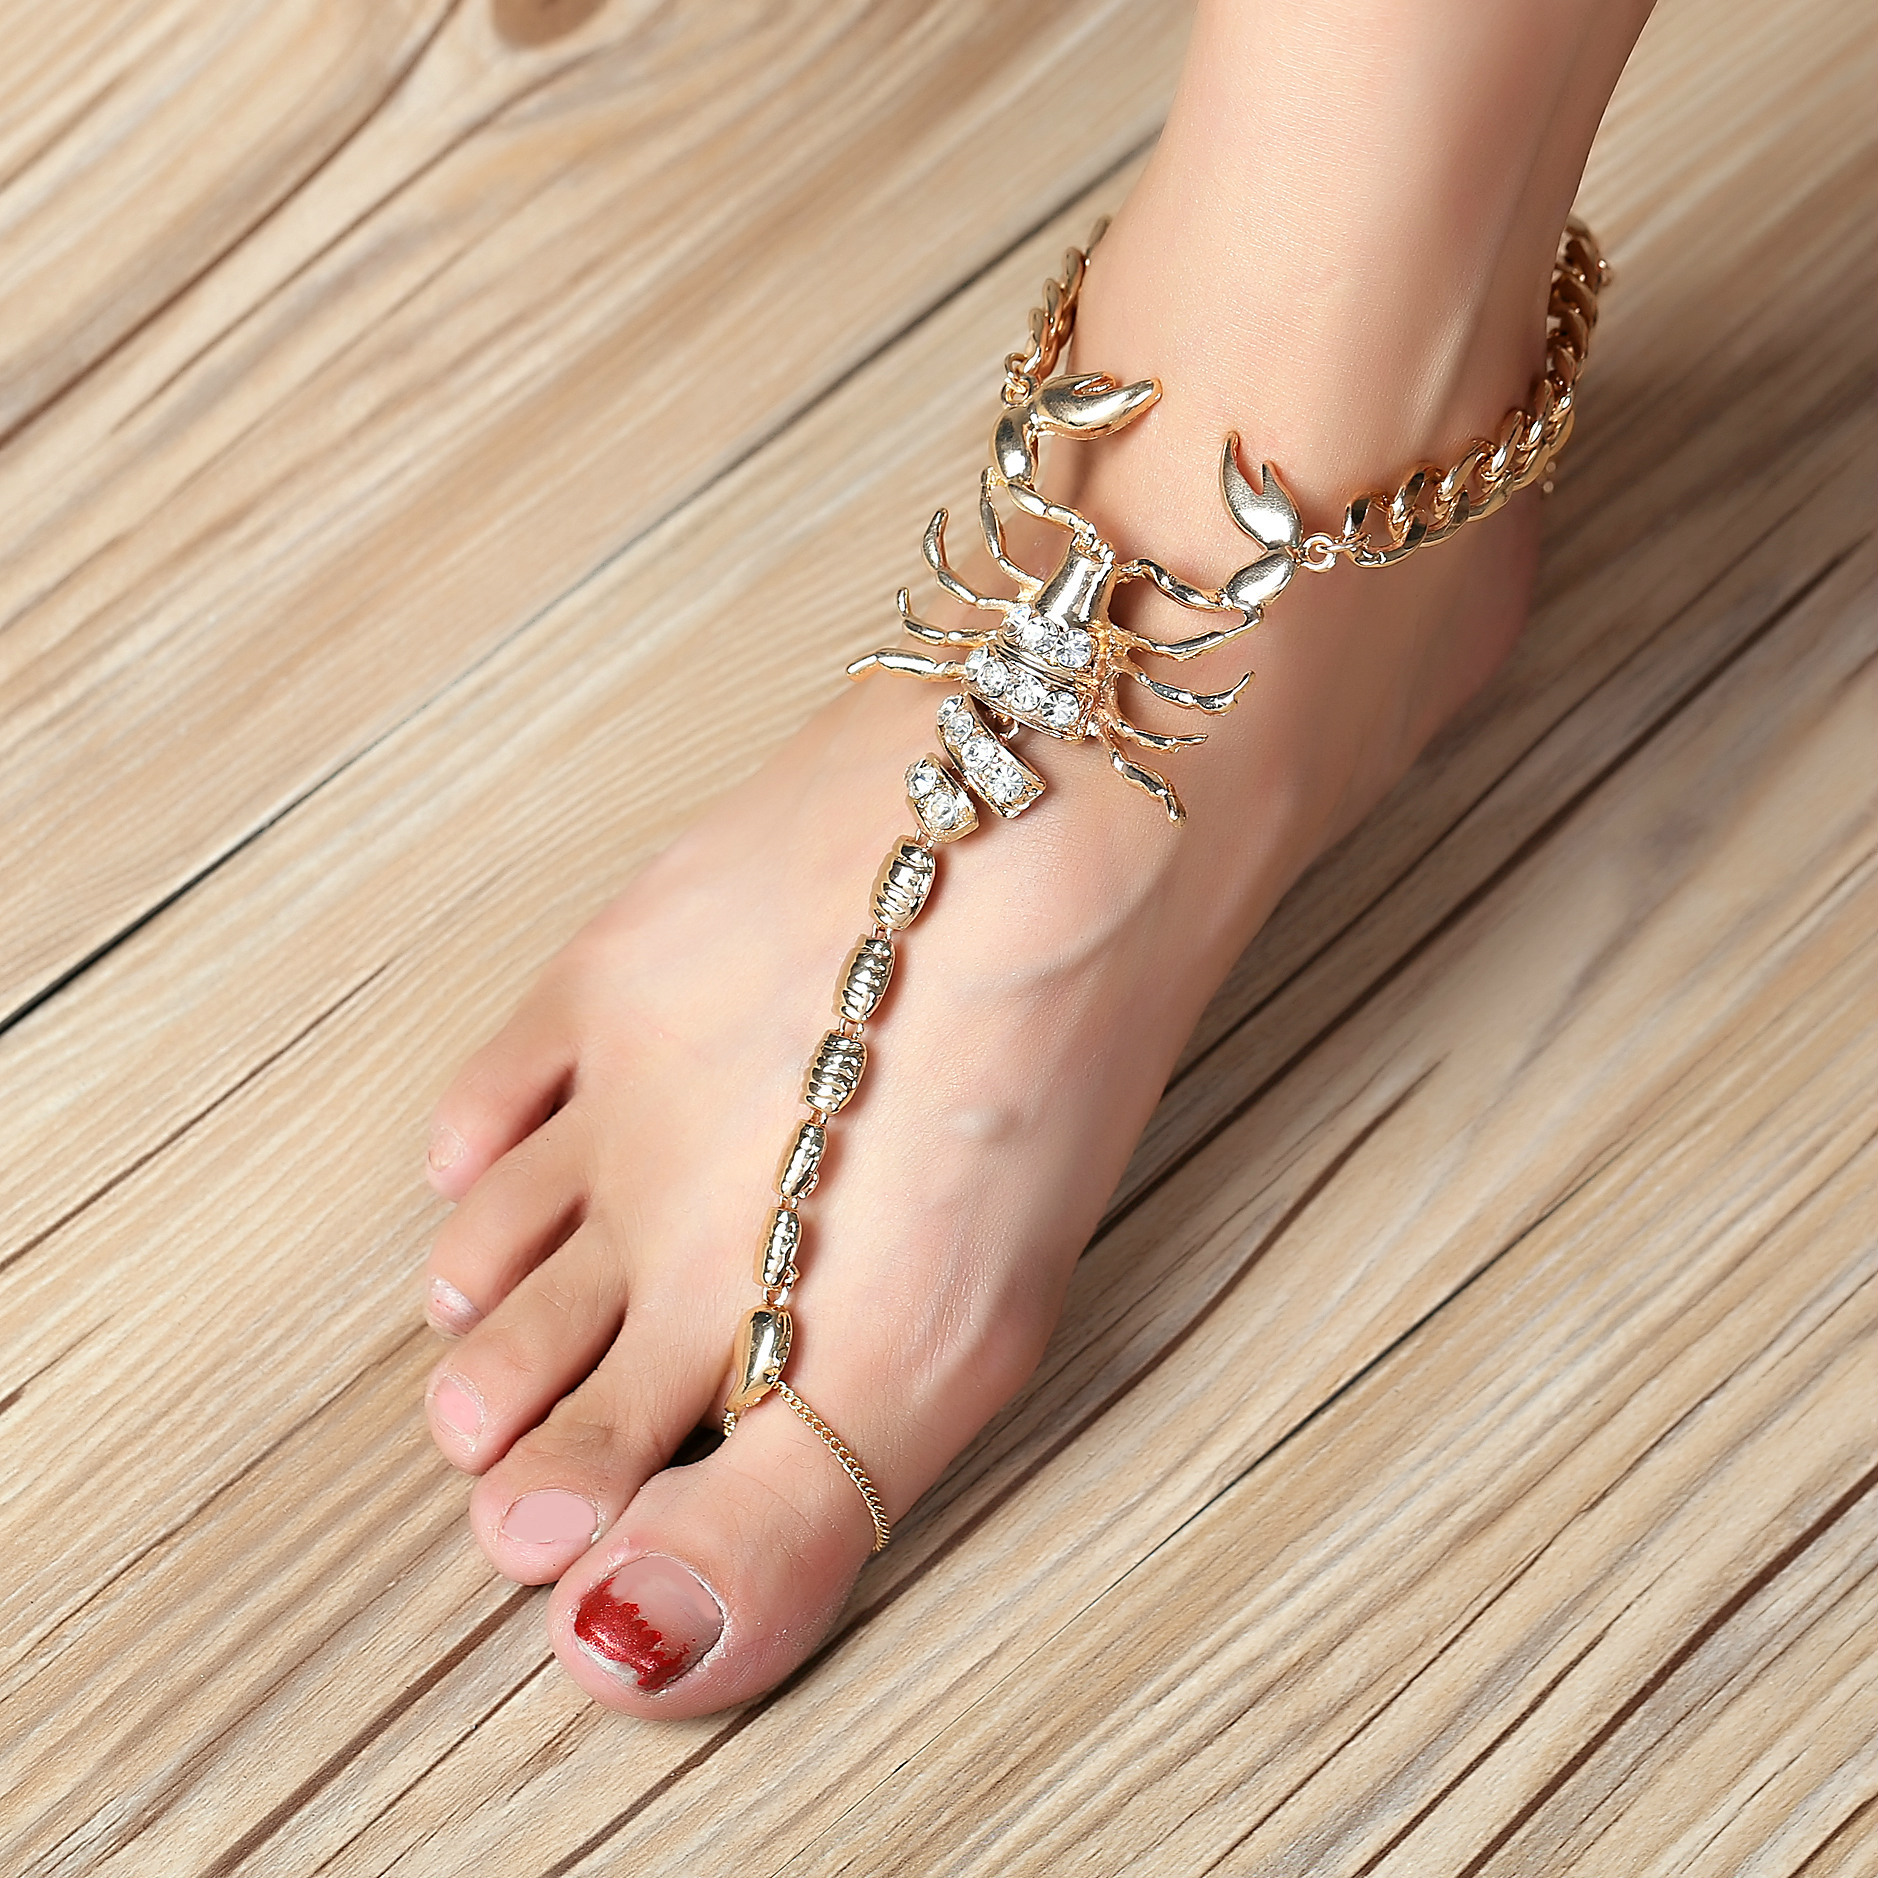 amazon anklets fine bells bead jewelry bling bracelet jingle charm dp com sterling silver anklet